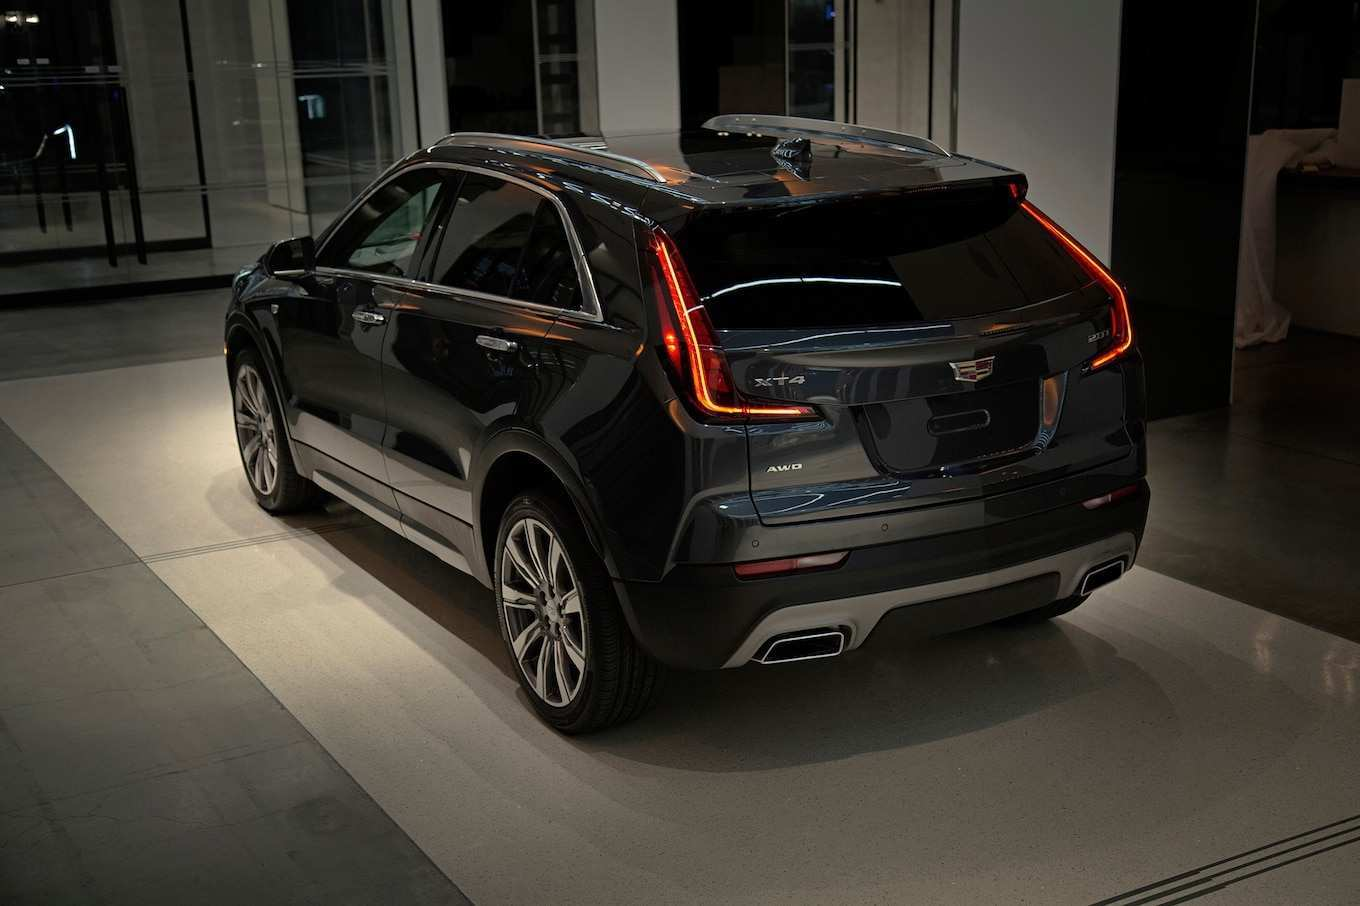 14 Best Review New Cadillac Xt4 2019 Images Engine Style with New Cadillac Xt4 2019 Images Engine